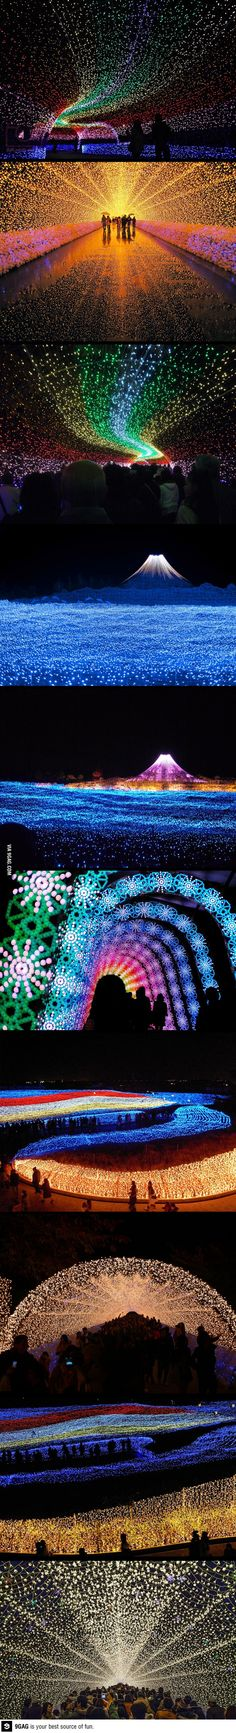 Located in Kuwana City (Mie Prefecture) is Nabano No Sato, a flower-focused park featuring sprawling gardens and giant greenhouses. Running annually from mid November to mid March is one of Japan's finest Winter Illuminations, including the famous tunnel of light.